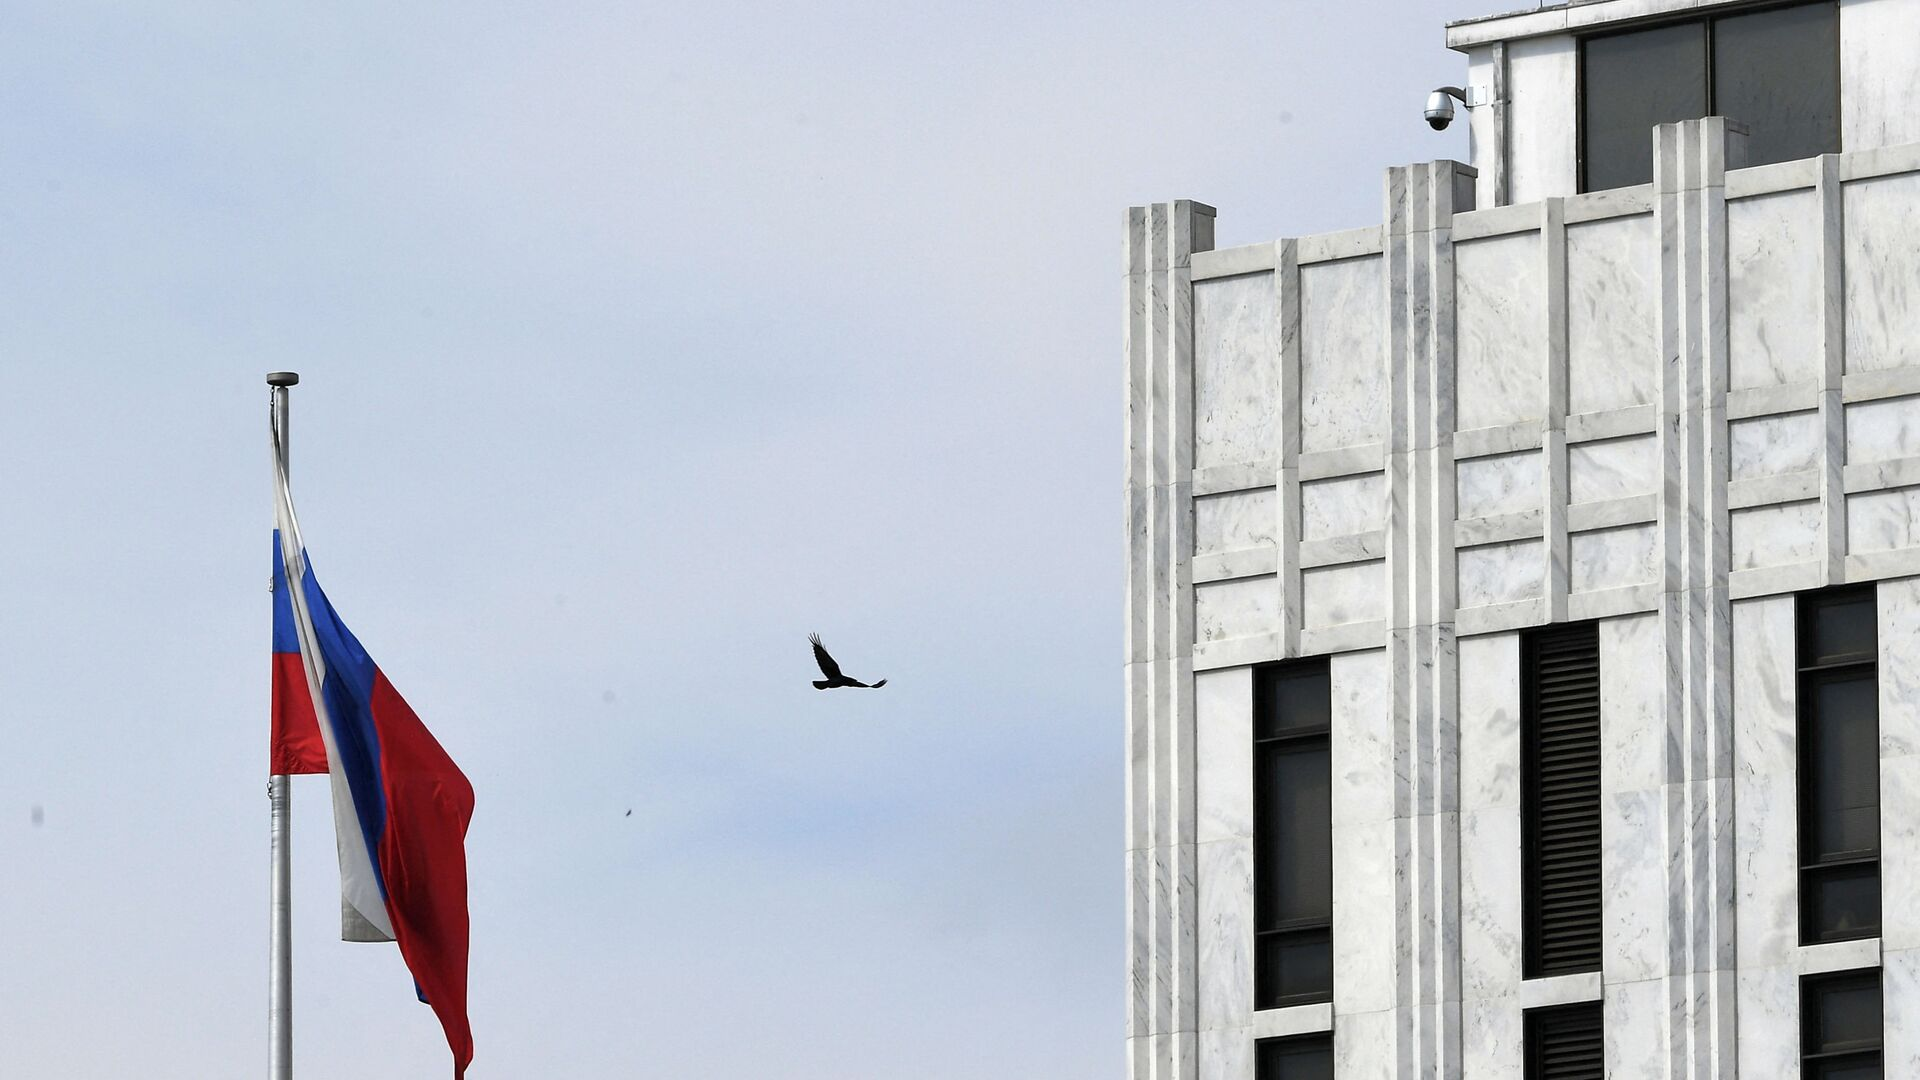 A bird flies past a Russian flag at the Embassy of Russia in Washington, DC on April 15, 2021. - Sputnik International, 1920, 16.09.2021